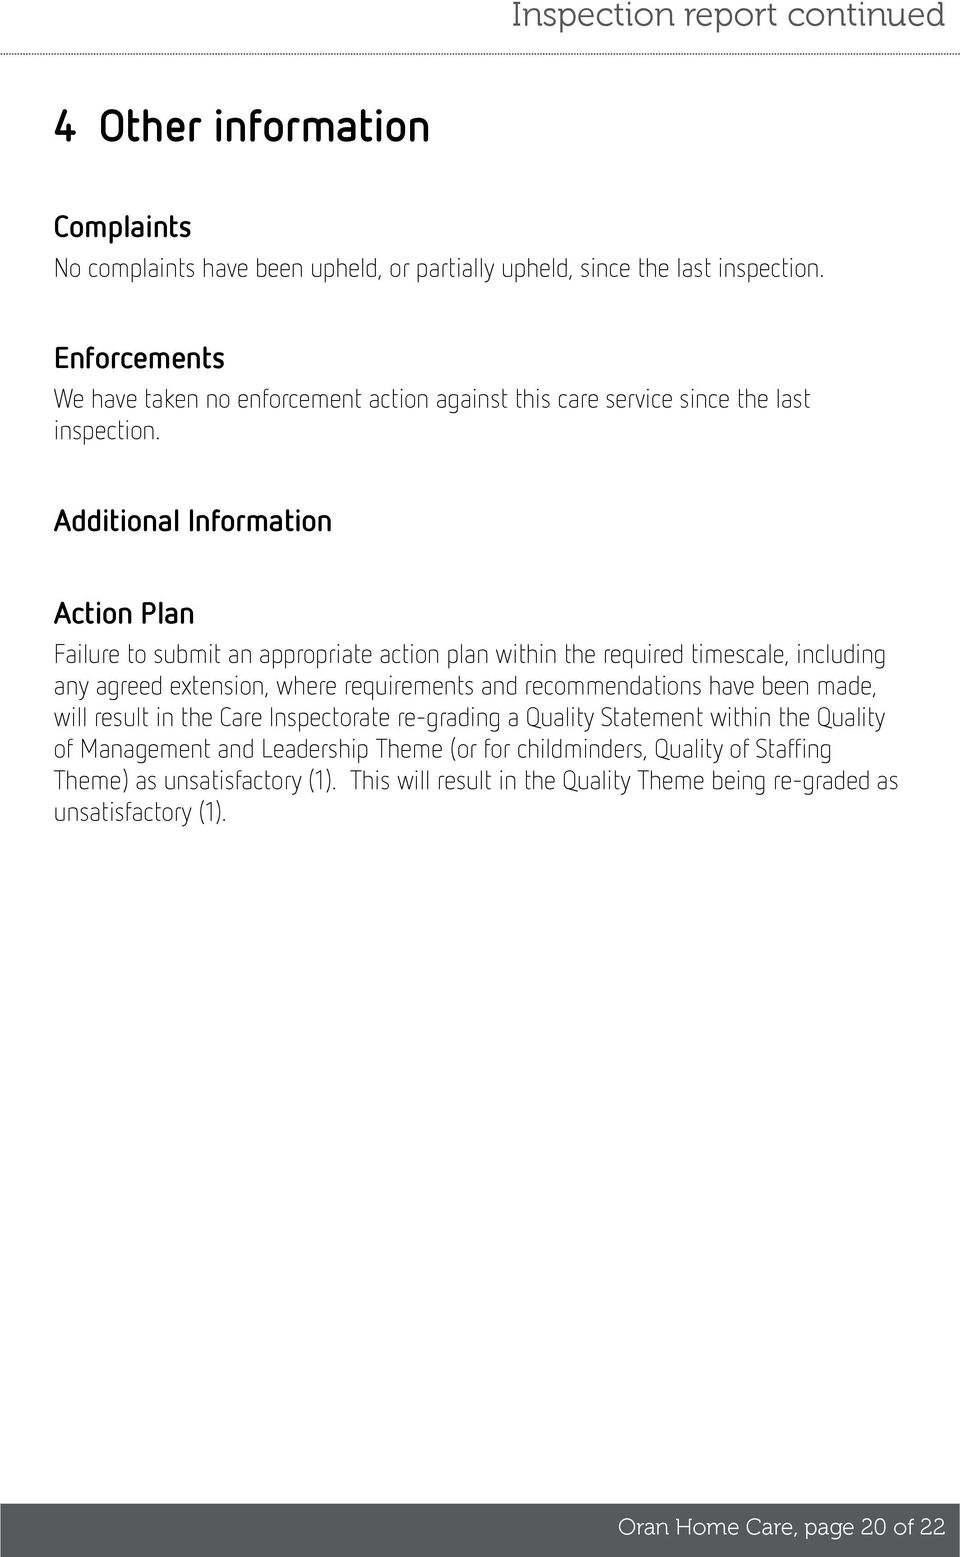 Additional Information Action Plan Failure to submit an appropriate action plan within the required timescale, including any agreed extension, where requirements and